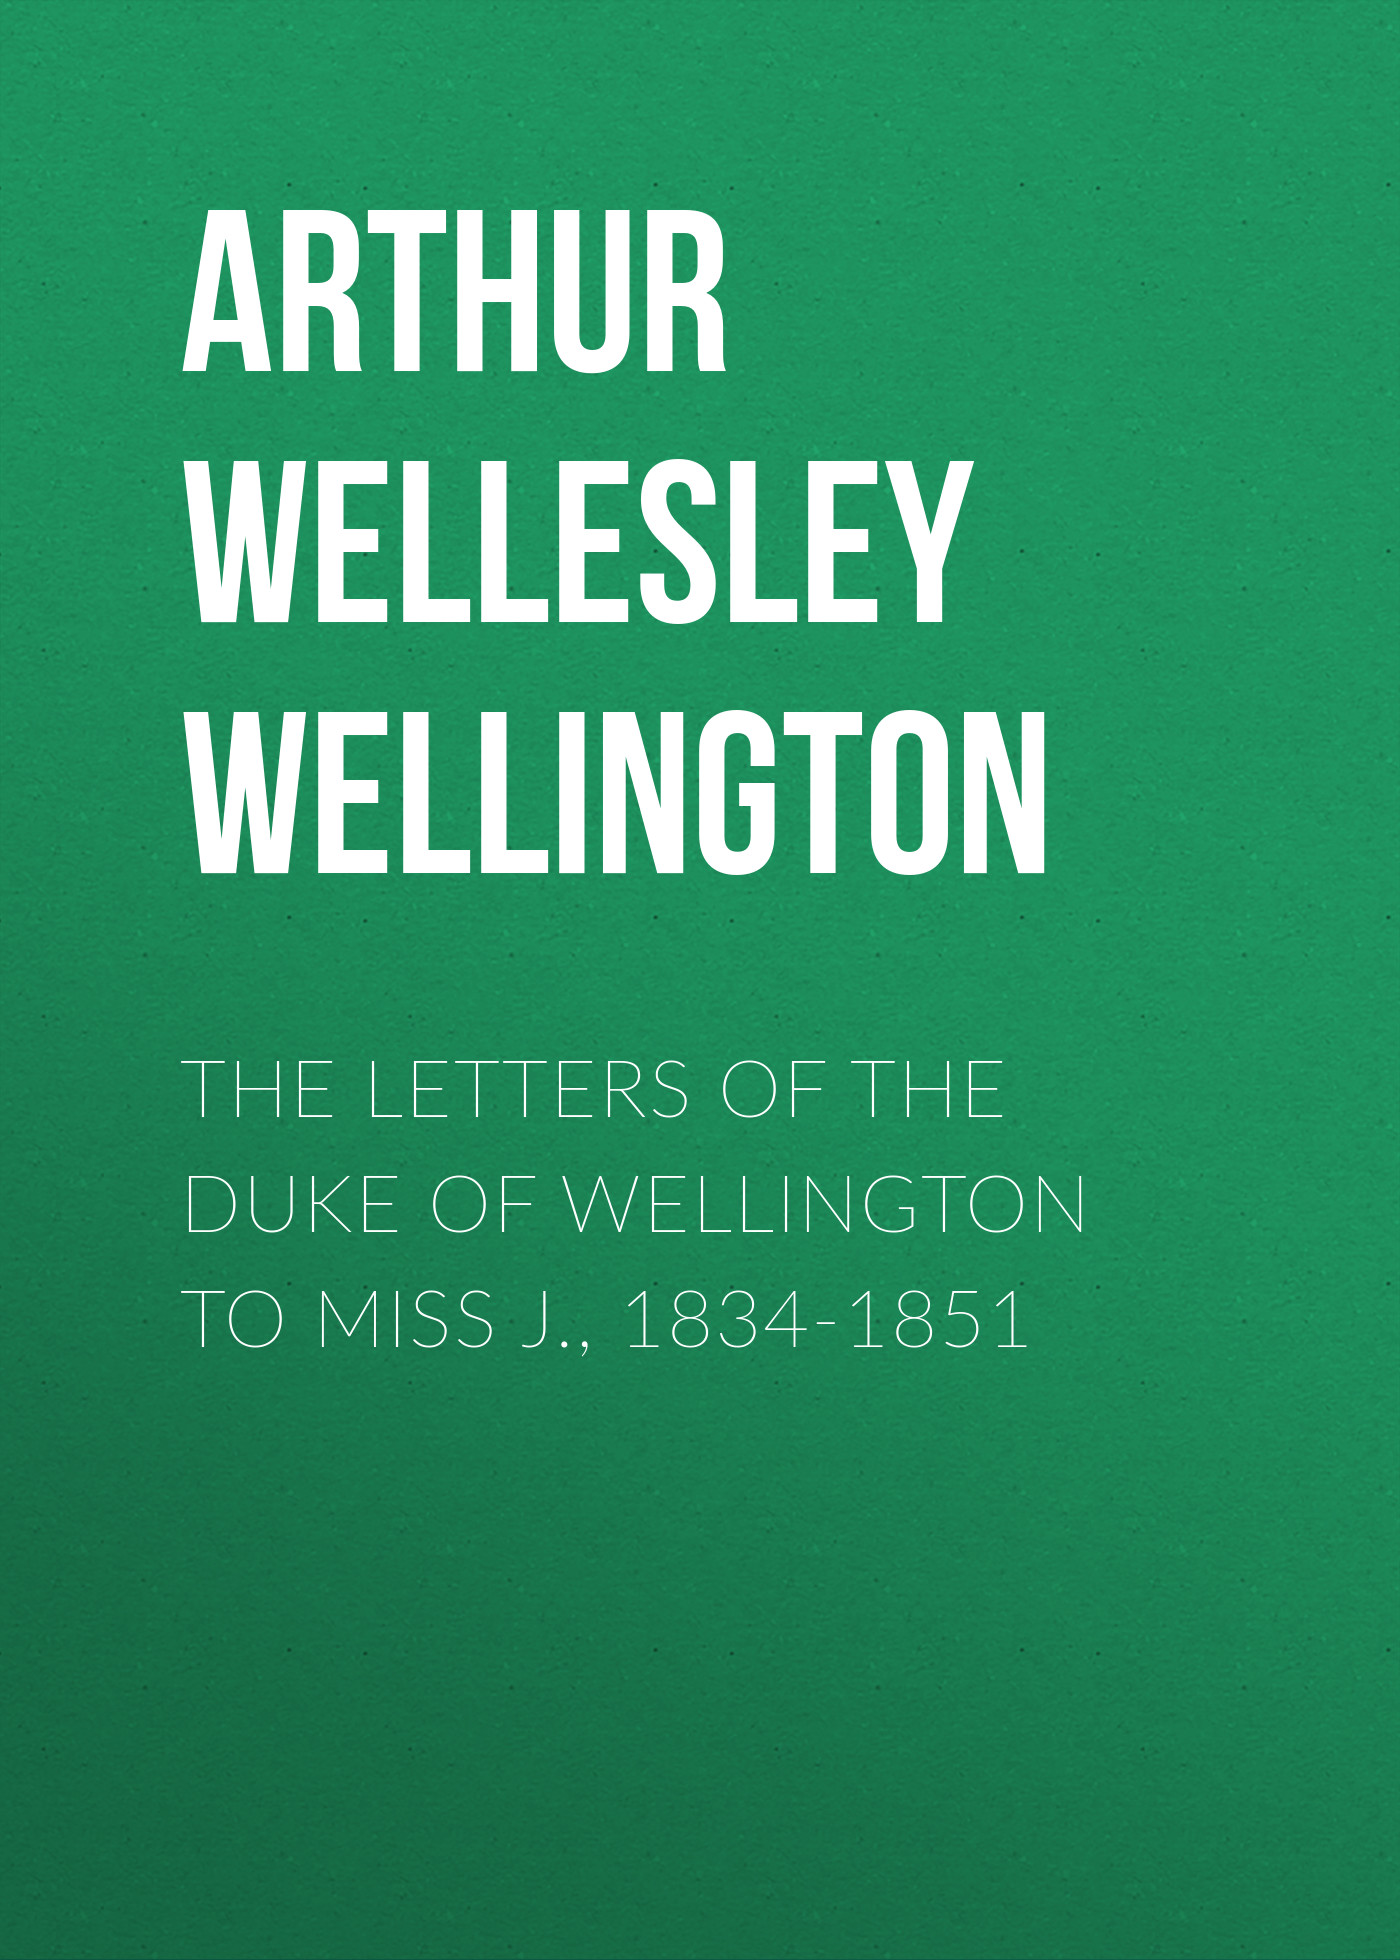 Arthur Wellesley Wellington The Letters of the Duke of Wellington to Miss J., 1834-1851 the surrender of miss fairbourne